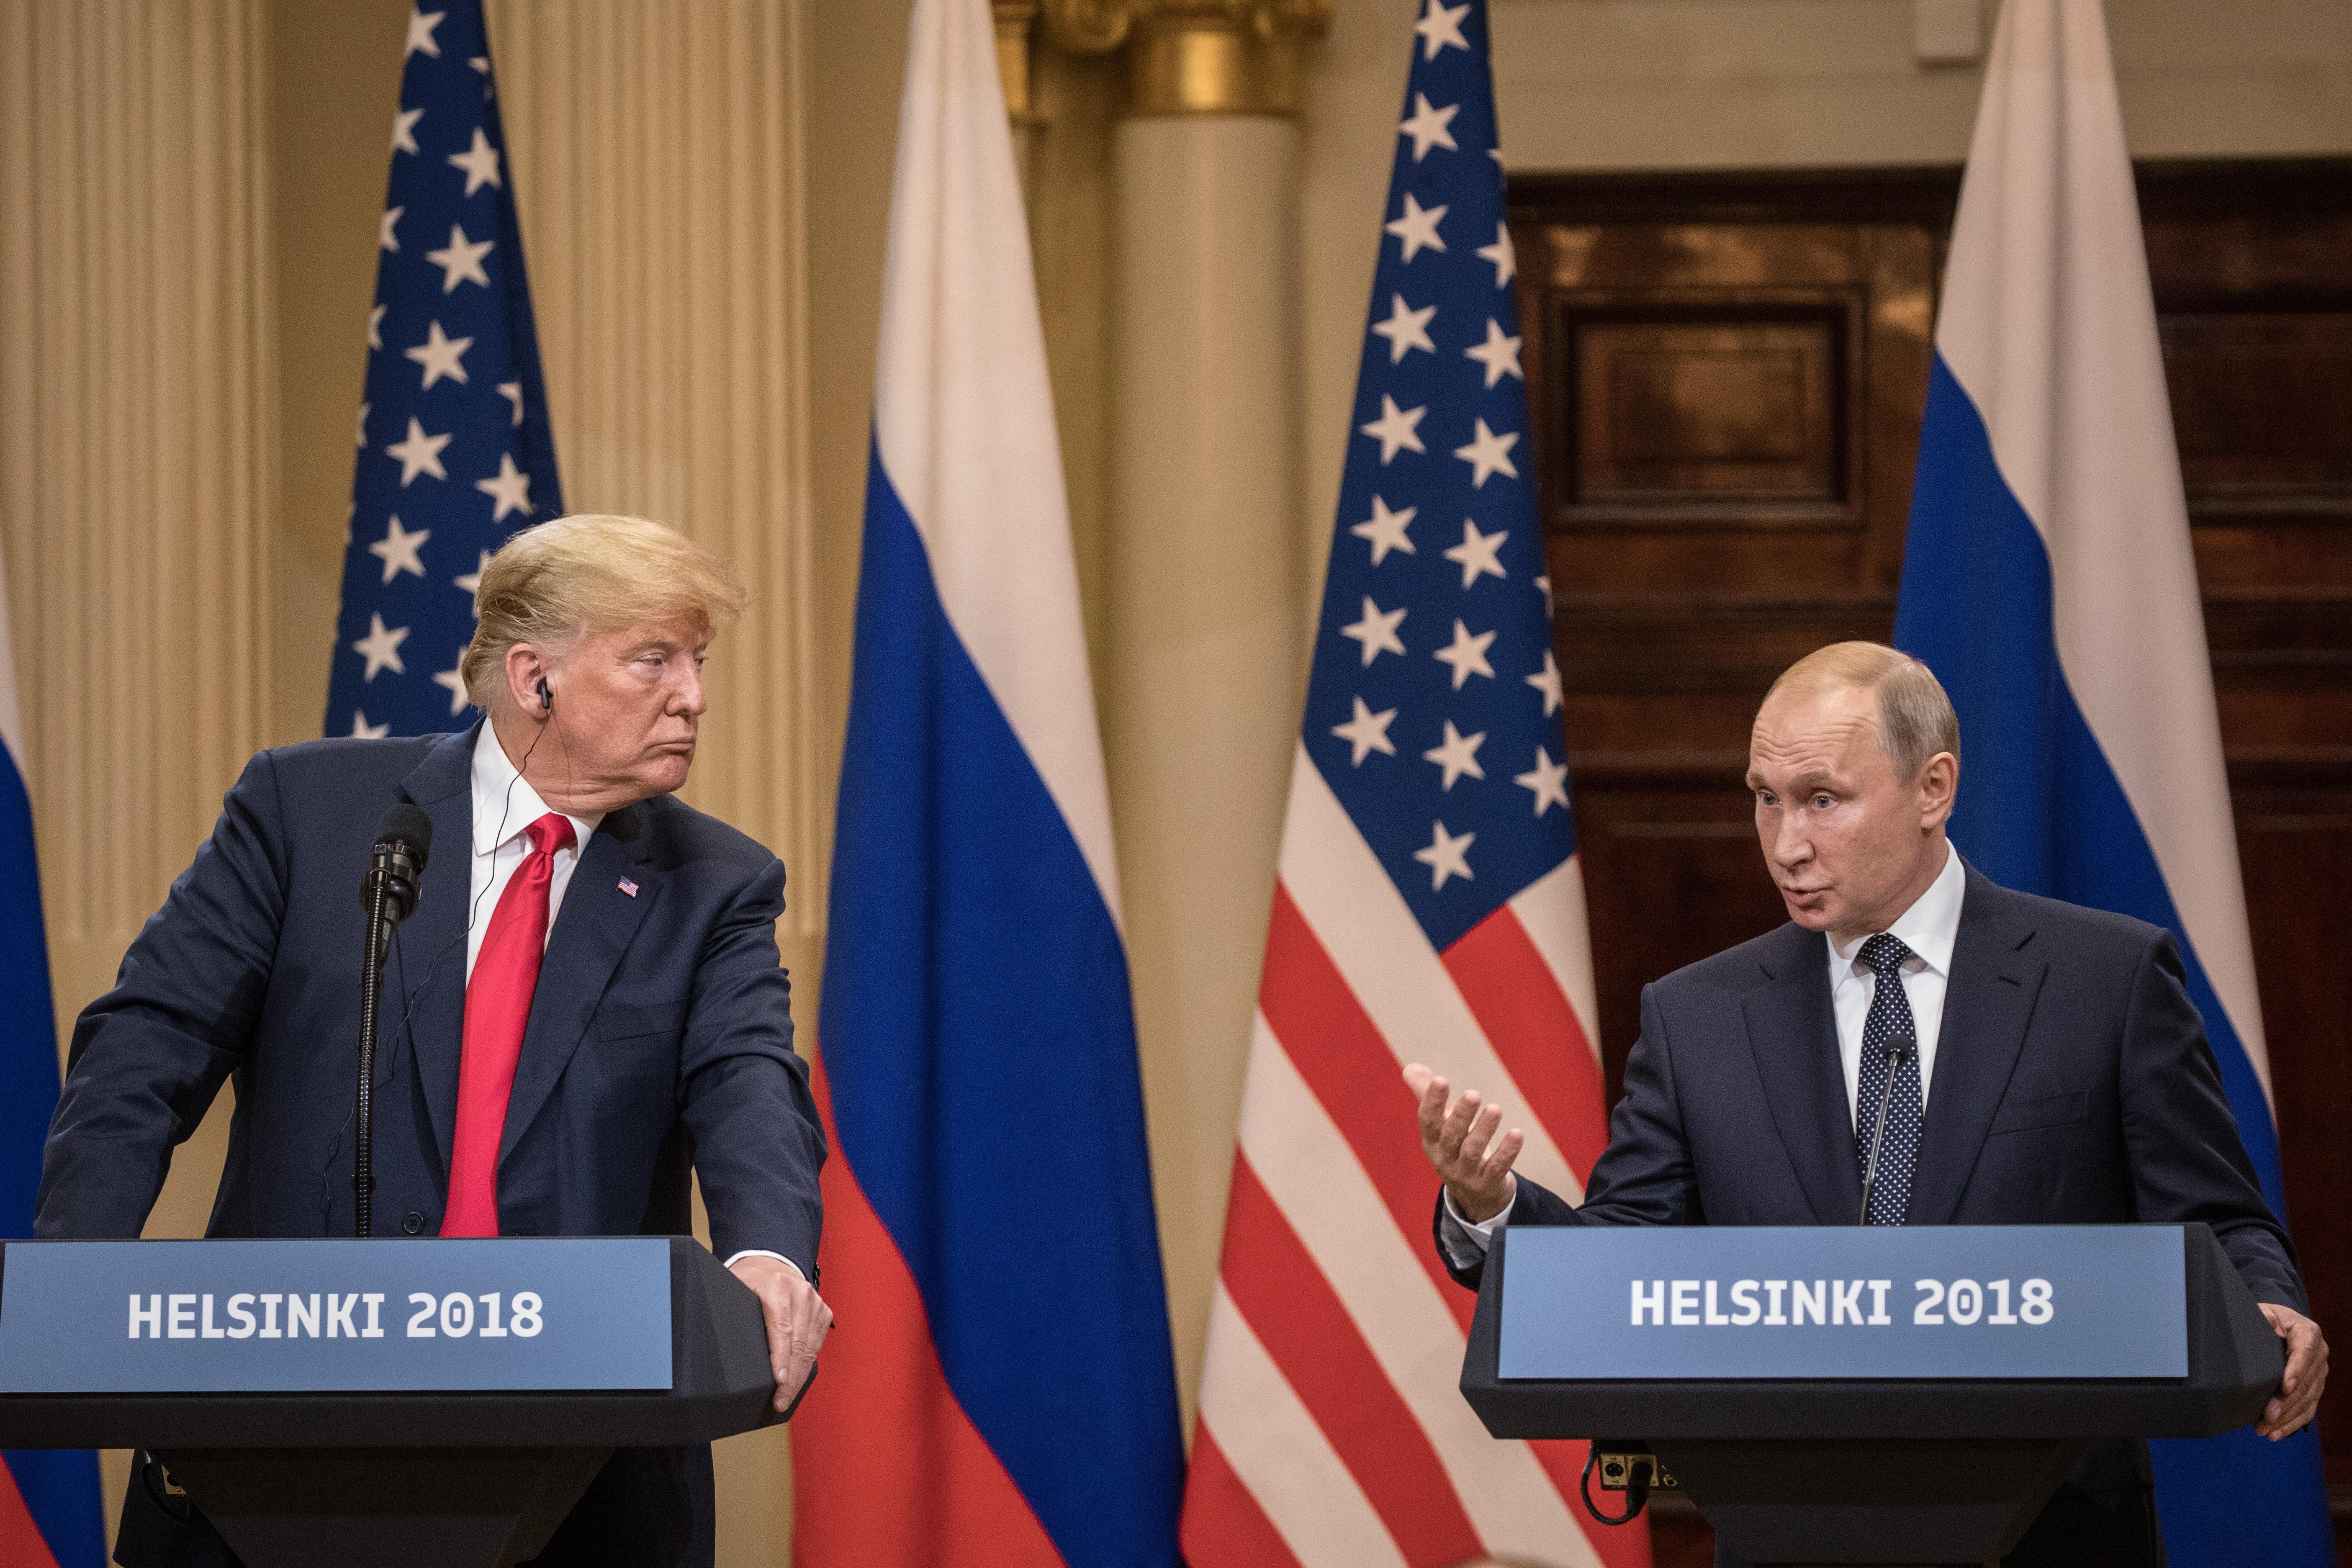 U.S. President Donald Trump and Russian President Vladimir Putin stand at podiums during a joint press conference after their summit on July 16 in Helsinki.